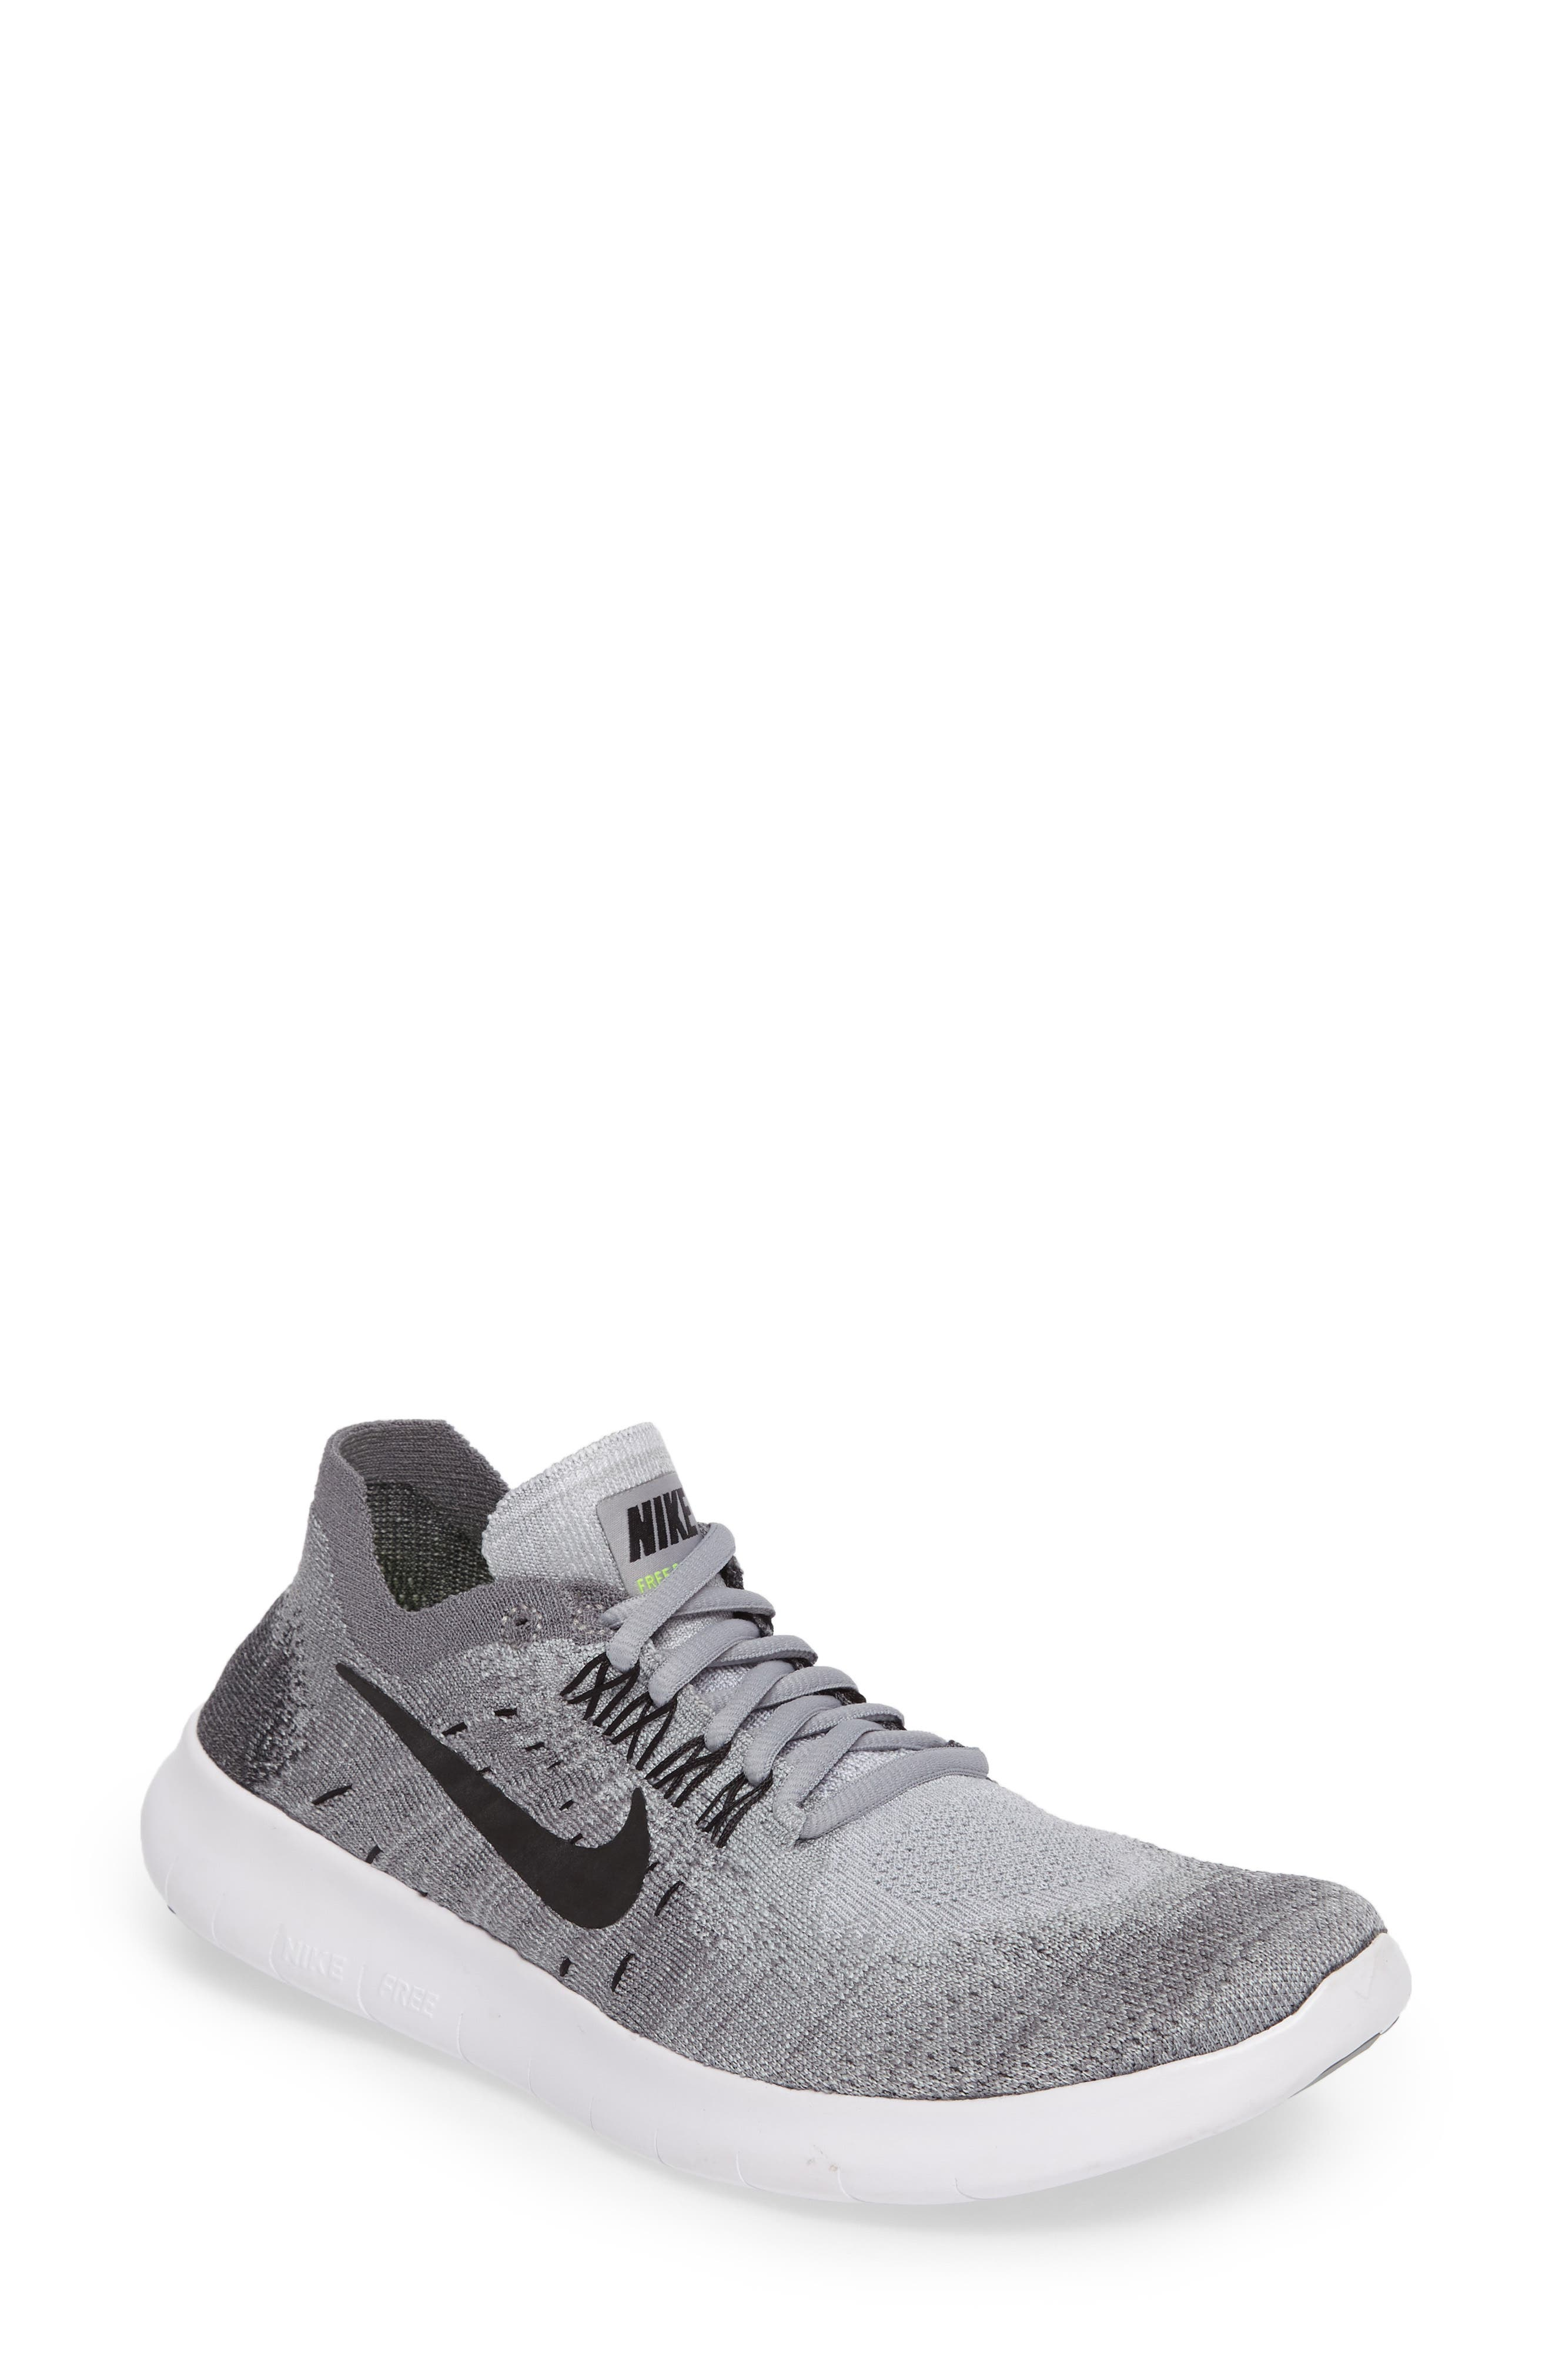 Free RN Flyknit 2 Running Shoe,                         Main,                         color, 020